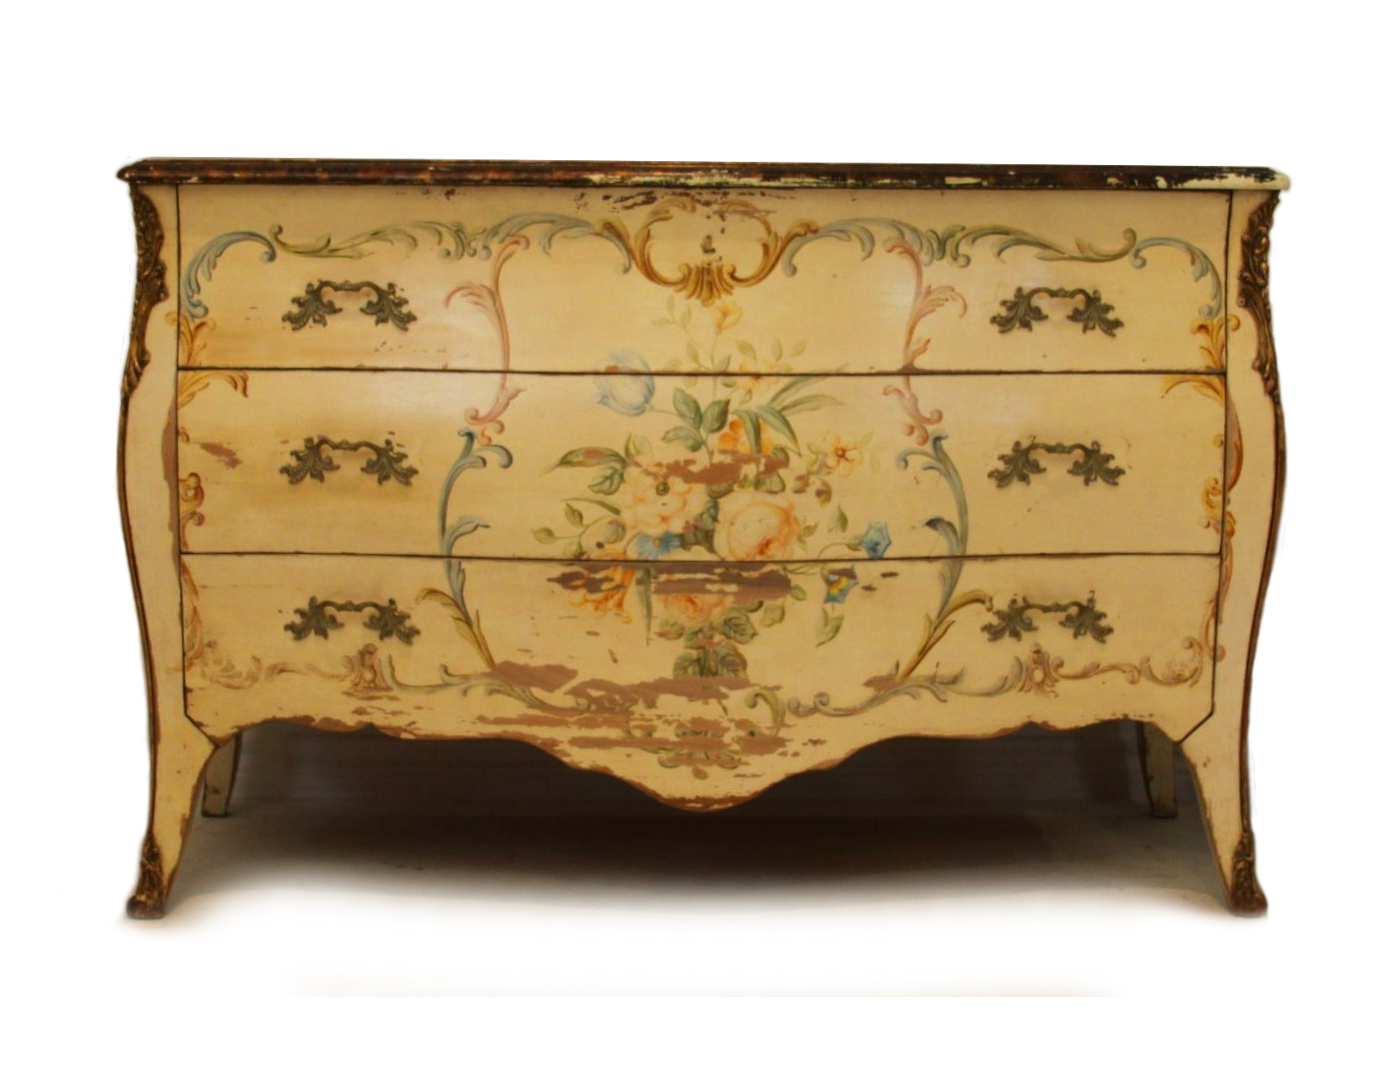 Amazing Bombe Chest For Your Living Room Ideas  Awesome Furniture Design By  Hooker Bombe Chest Wiki Bombe Chest Crate And Barrel Antique Bombe Chest  Bombe. This original floral hand painted bombe chest of drawers is